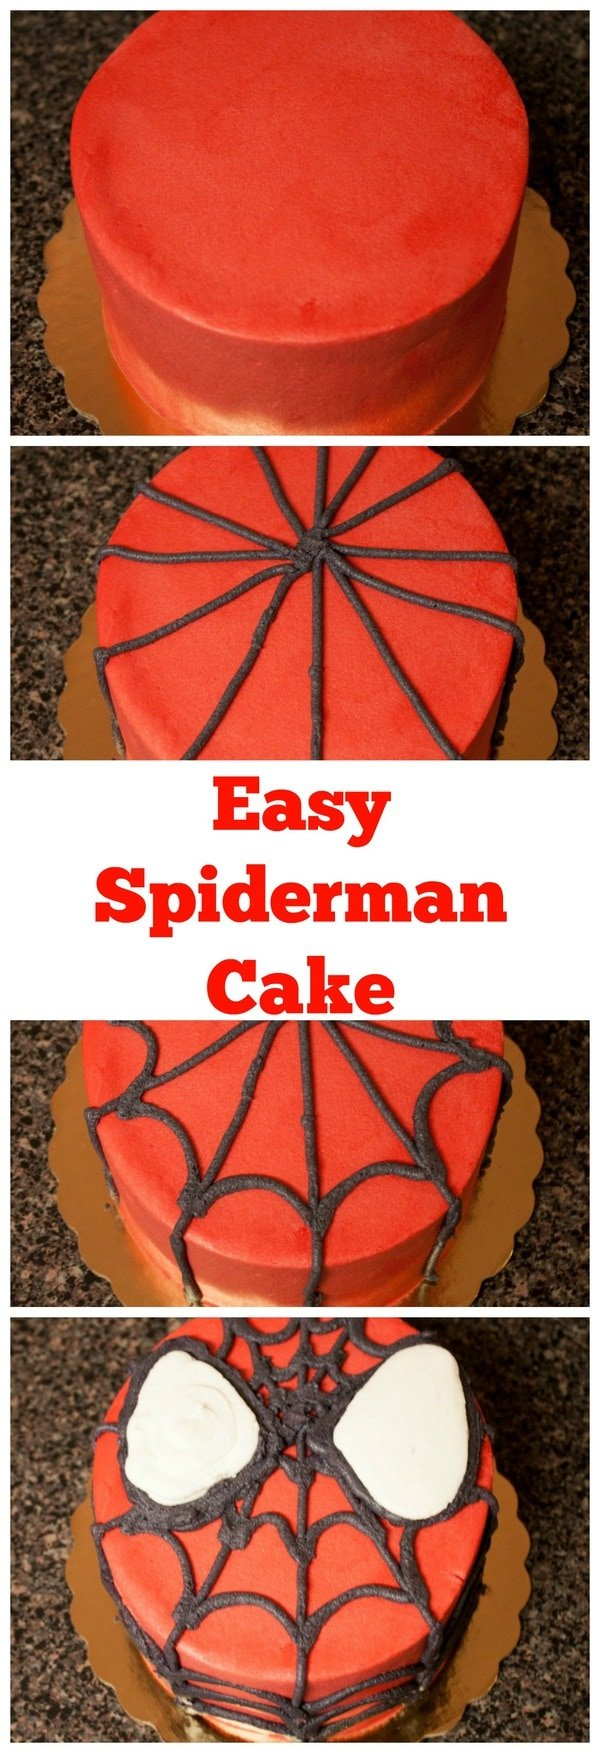 DIY Spiderman Cake with Homemade cake and Frosting MidgetMomma